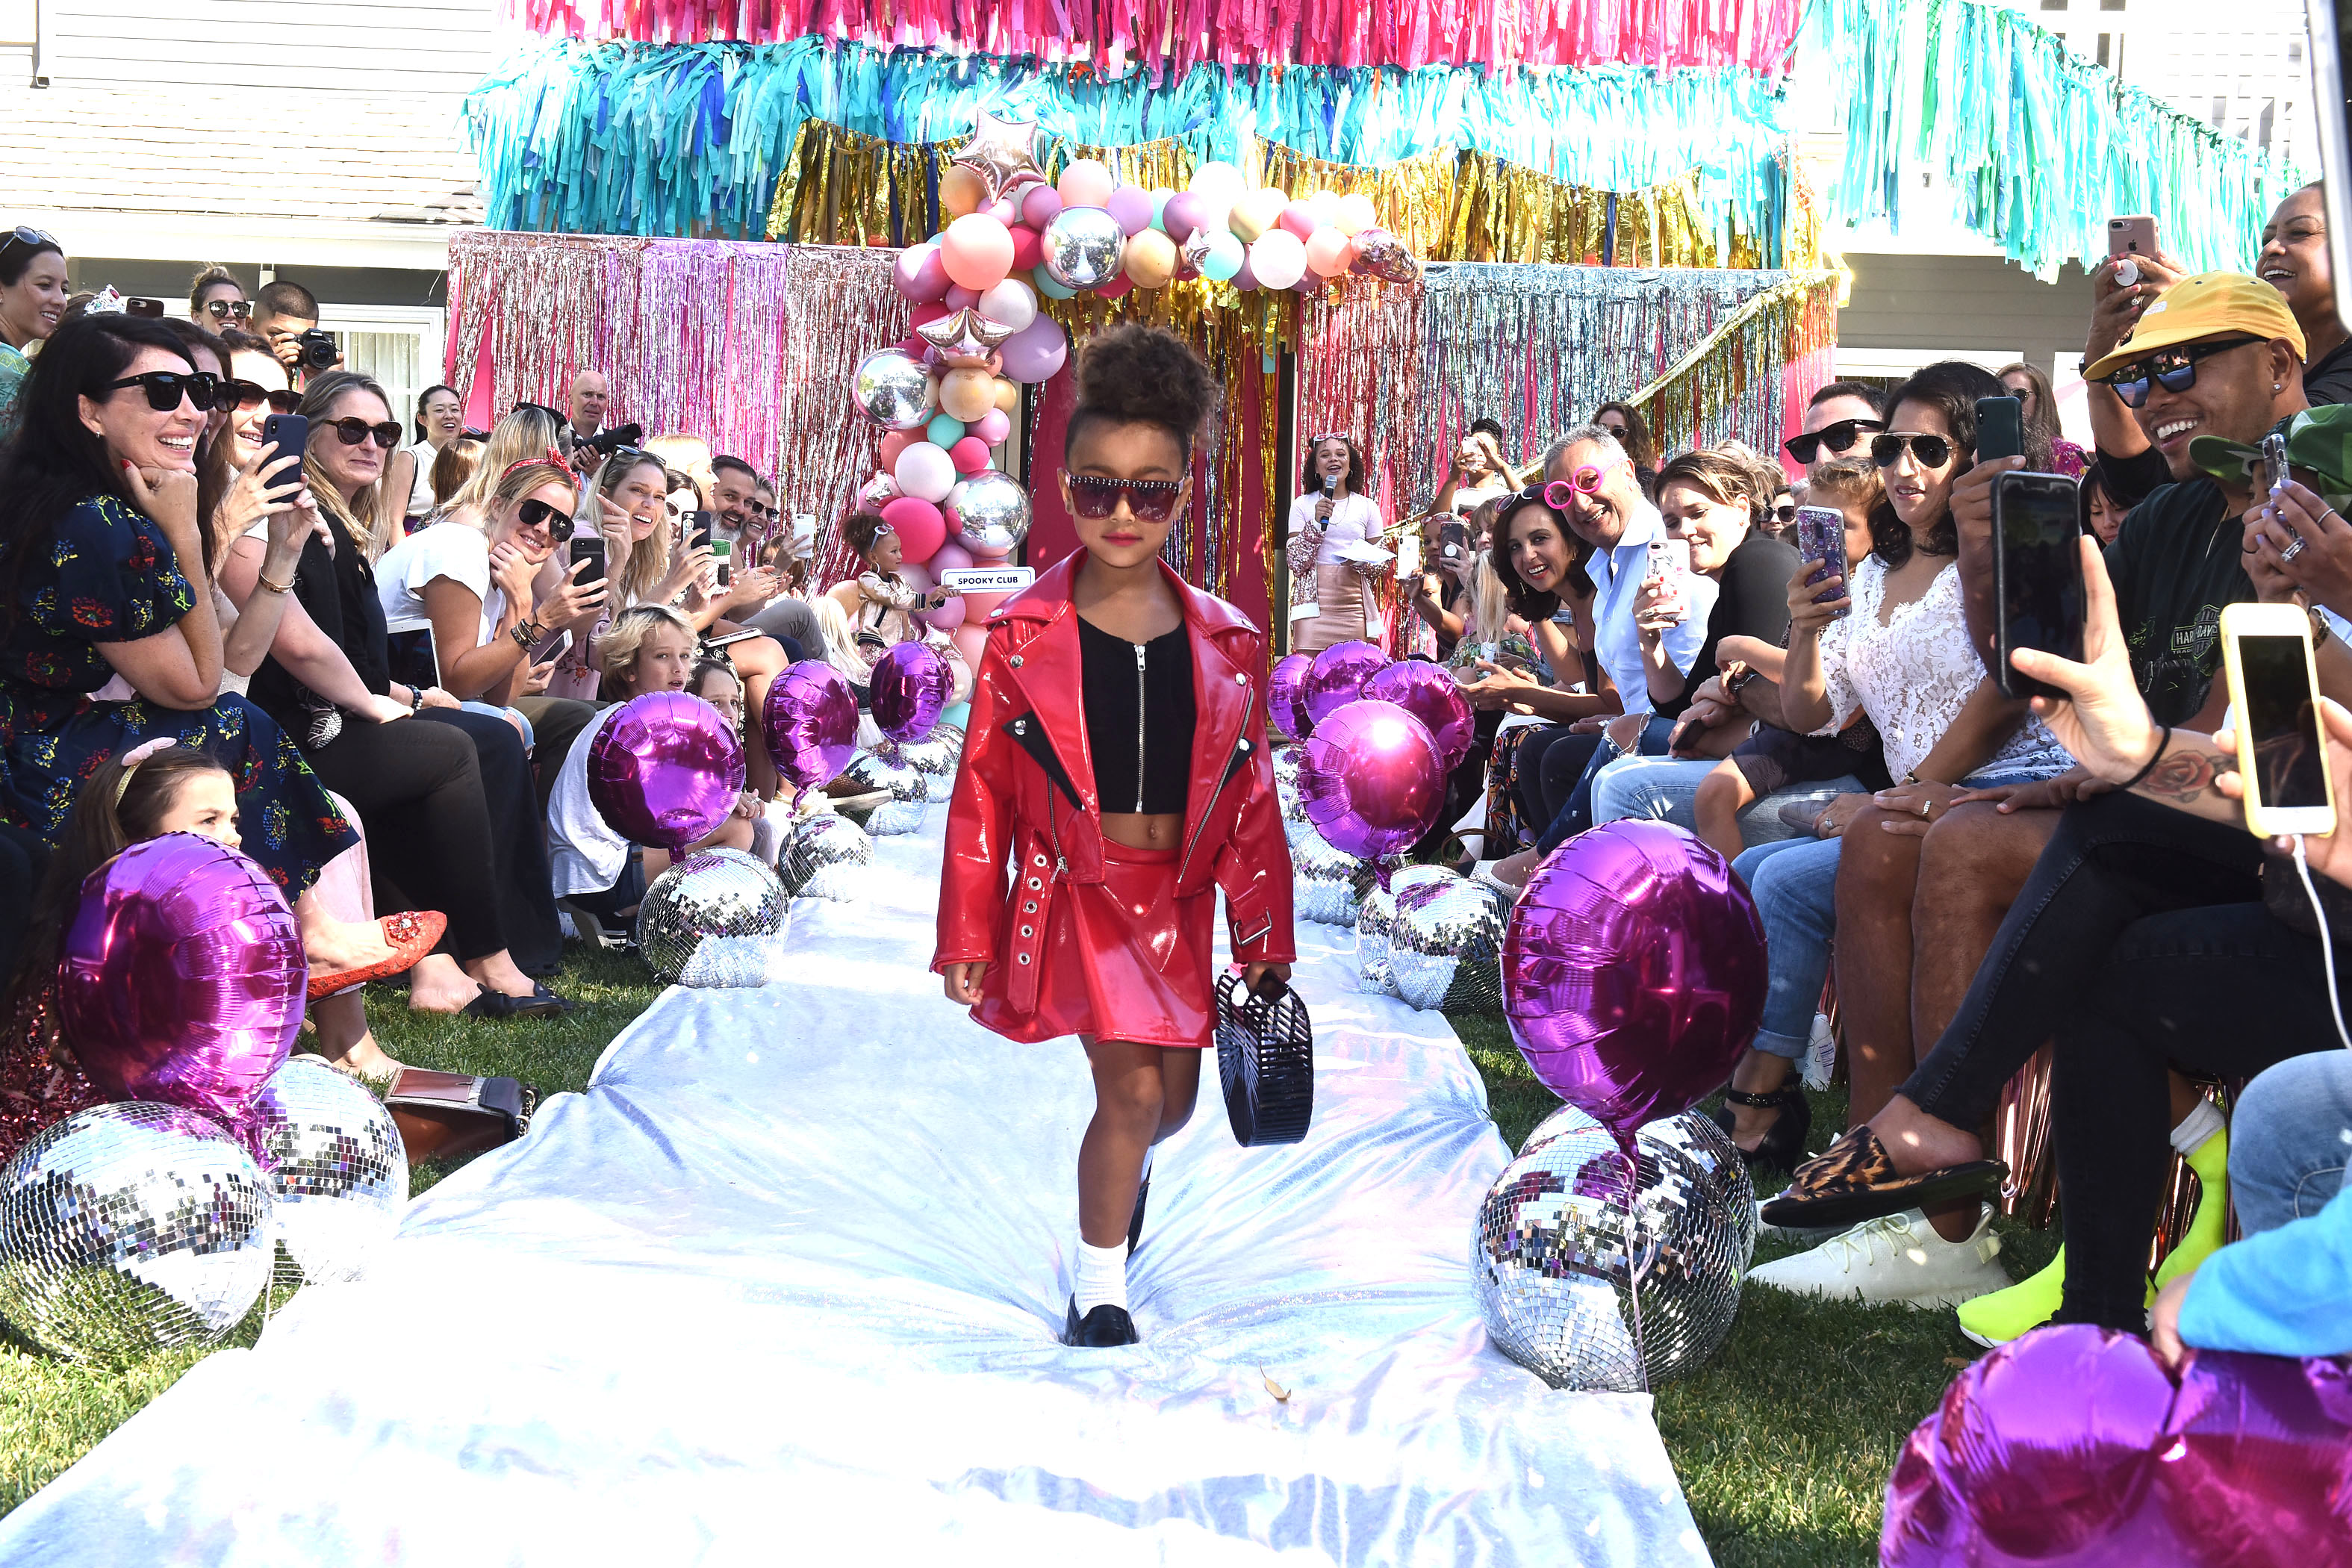 Kim Kardashian's daughter North West walks the runway at the L.O.L. Surprise Fashion Show in Los Angeles on Sept. 22, 2018